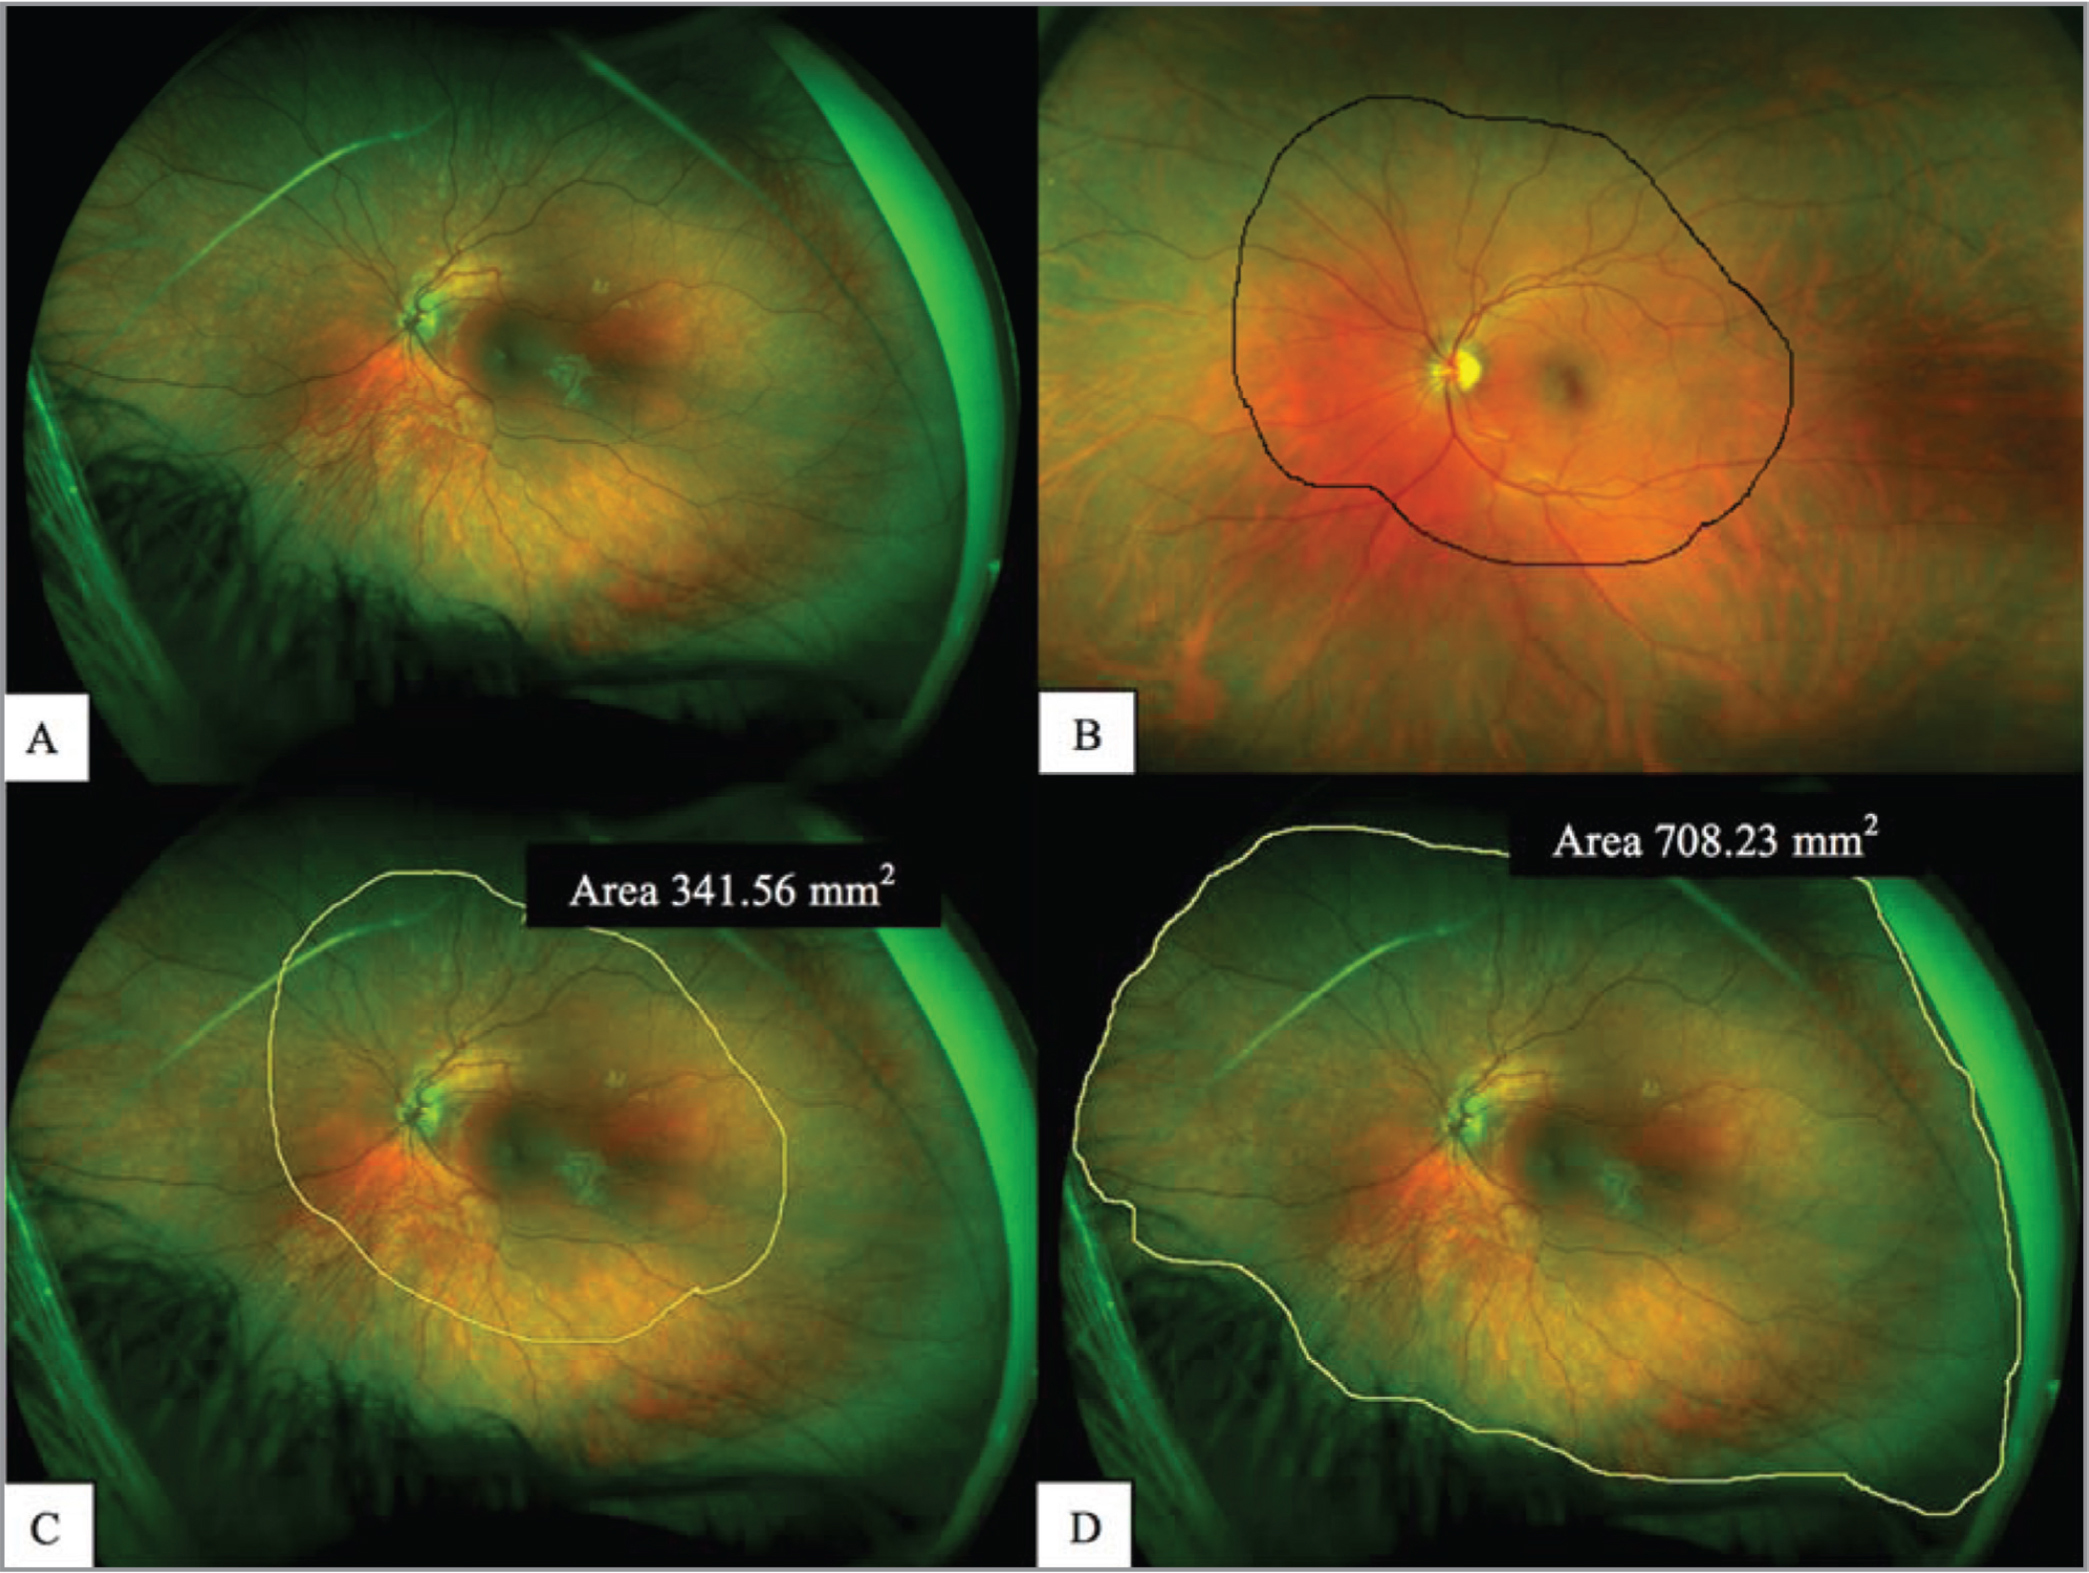 Methodology for retinal area measurements. (A) Ultra-widefield photograph (UWF) in a 4-year-old girl with left optic nerve hypoplasia. (B) Clinical drawing with area drawn on examination form by clinician. (C) Transposition of the clinical drawing freestyle to the UWF image. The area of retina evaluated with clinical exam was generated by the Optomap software. (D) UWF photograph with evaluated retina circled with the freestyle drawing tool. The retinal area measurement was generated by the Optomap software.